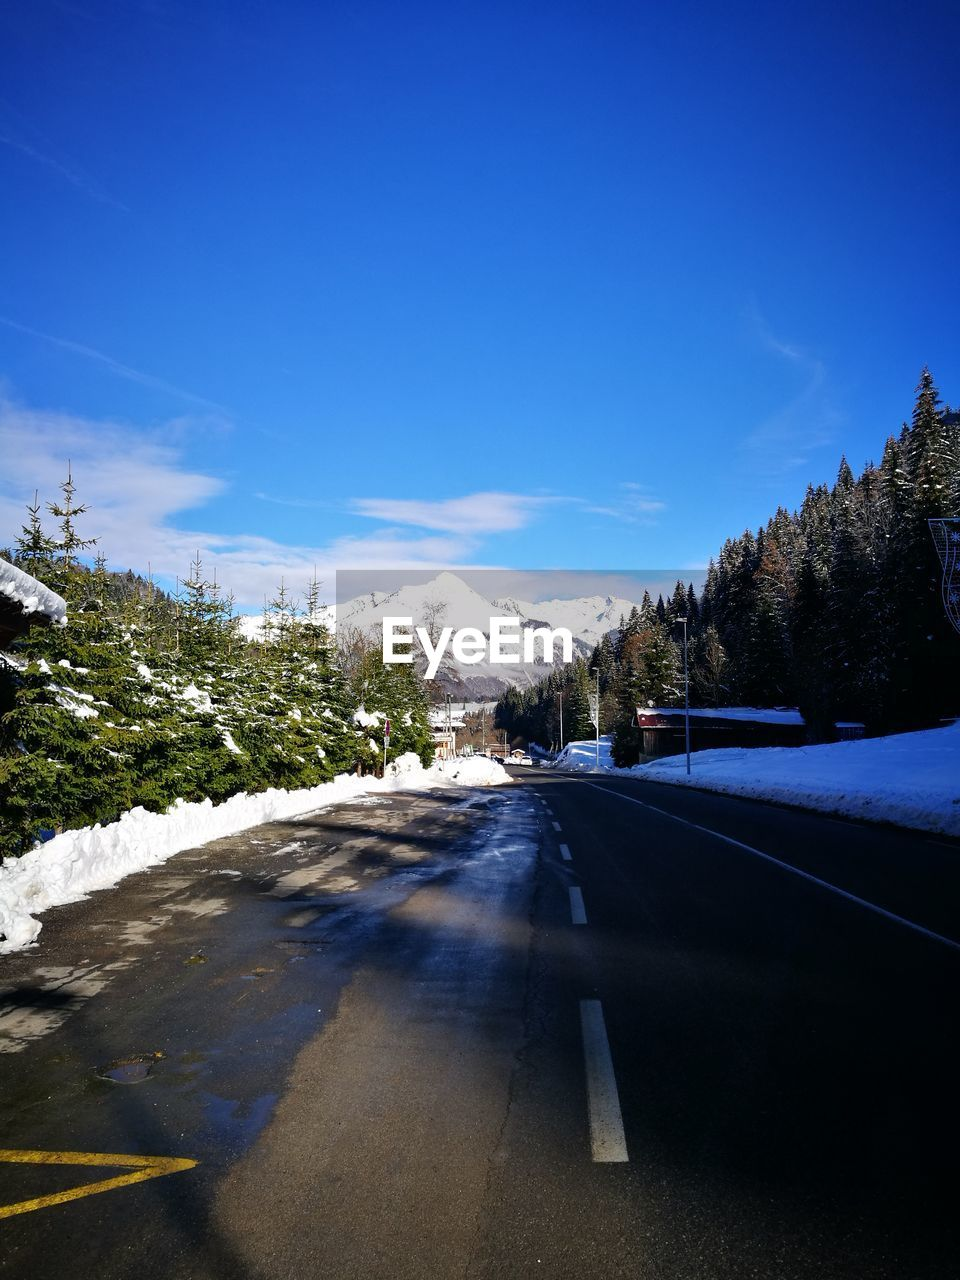 road, the way forward, transportation, winter, snow, nature, diminishing perspective, cold temperature, sky, tree, tranquil scene, scenics, mountain, car, day, no people, tranquility, landscape, beauty in nature, outdoors, blue, car point of view, clear sky